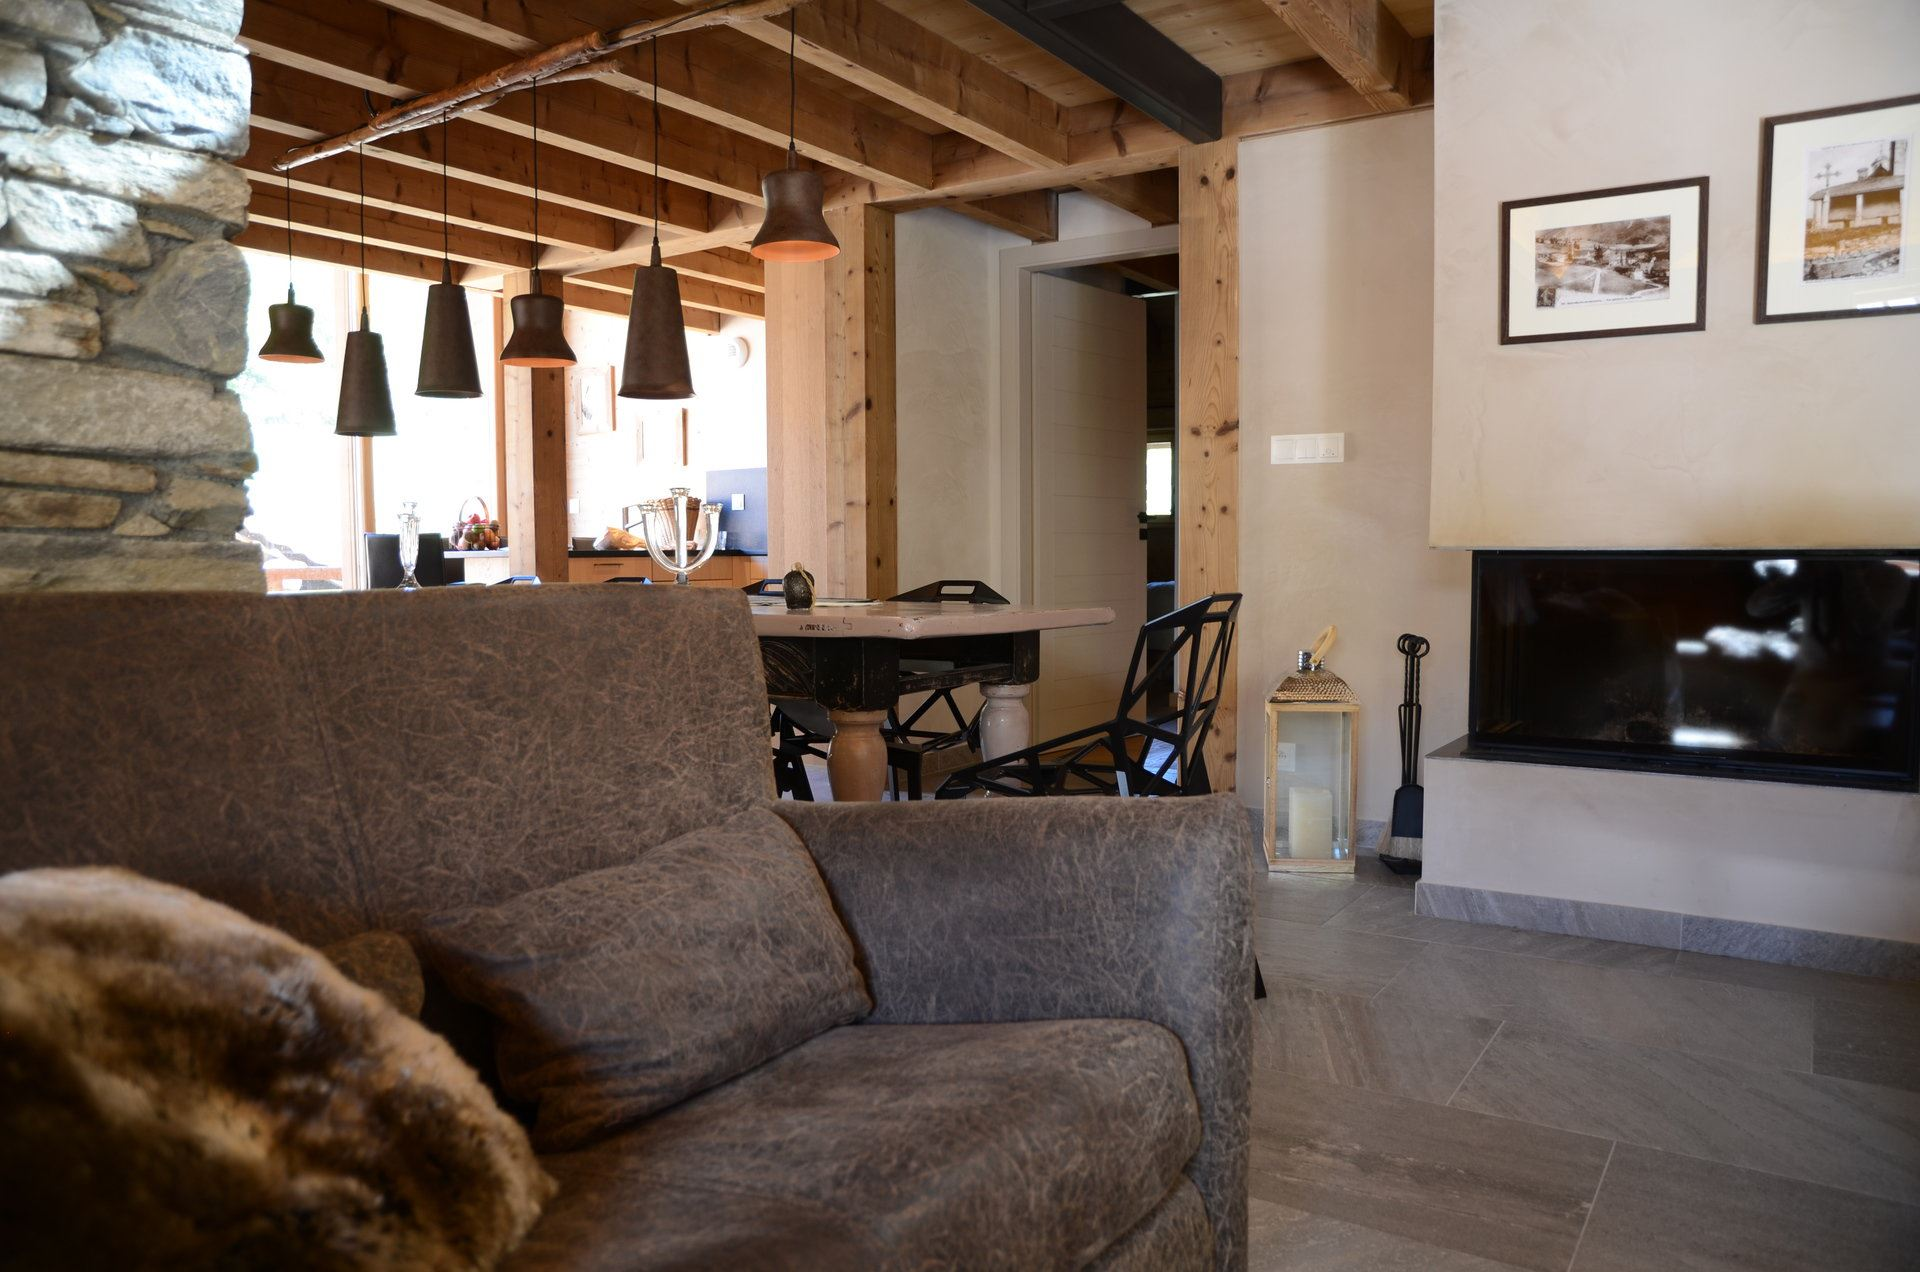 4 Room 10 Pers Chalet / CHALET ETERLOU 10